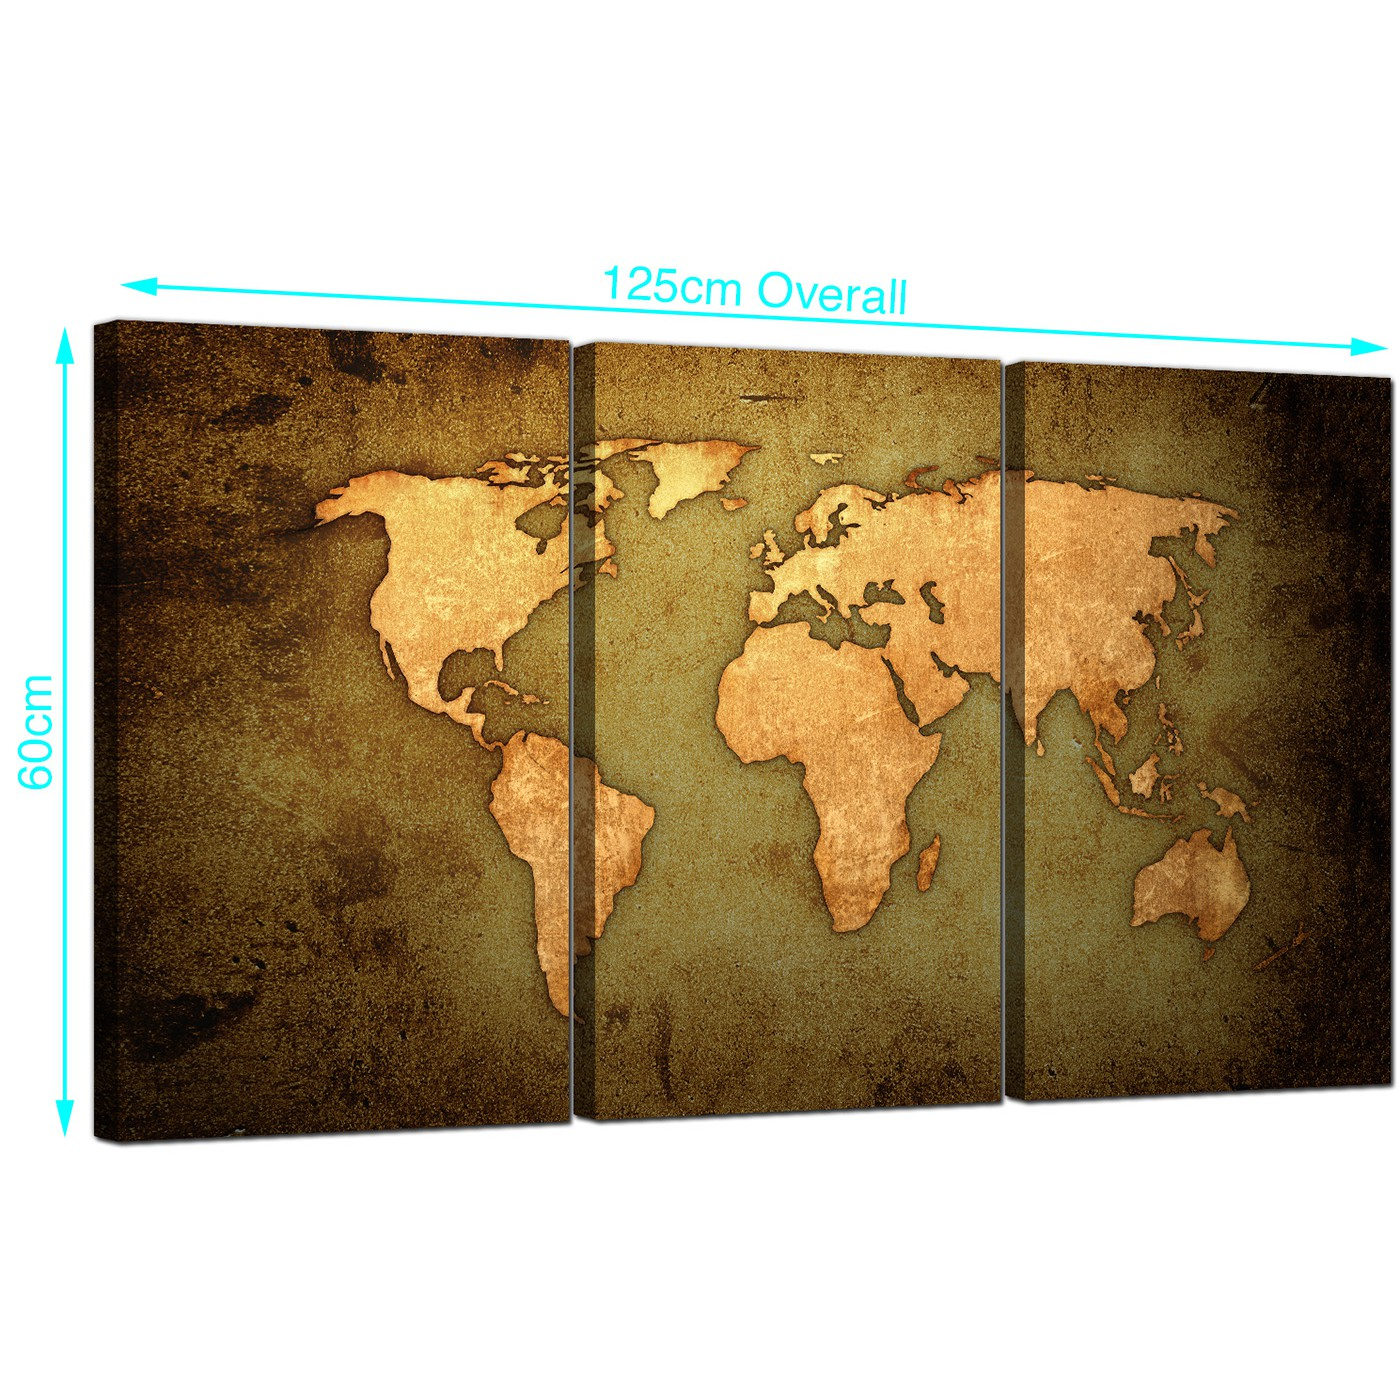 Vintage world map canvas art set of three for your study display gallery item 1 set of three world map canvas prints uk 125cm x 60cm 3189 display gallery item 2 gumiabroncs Images